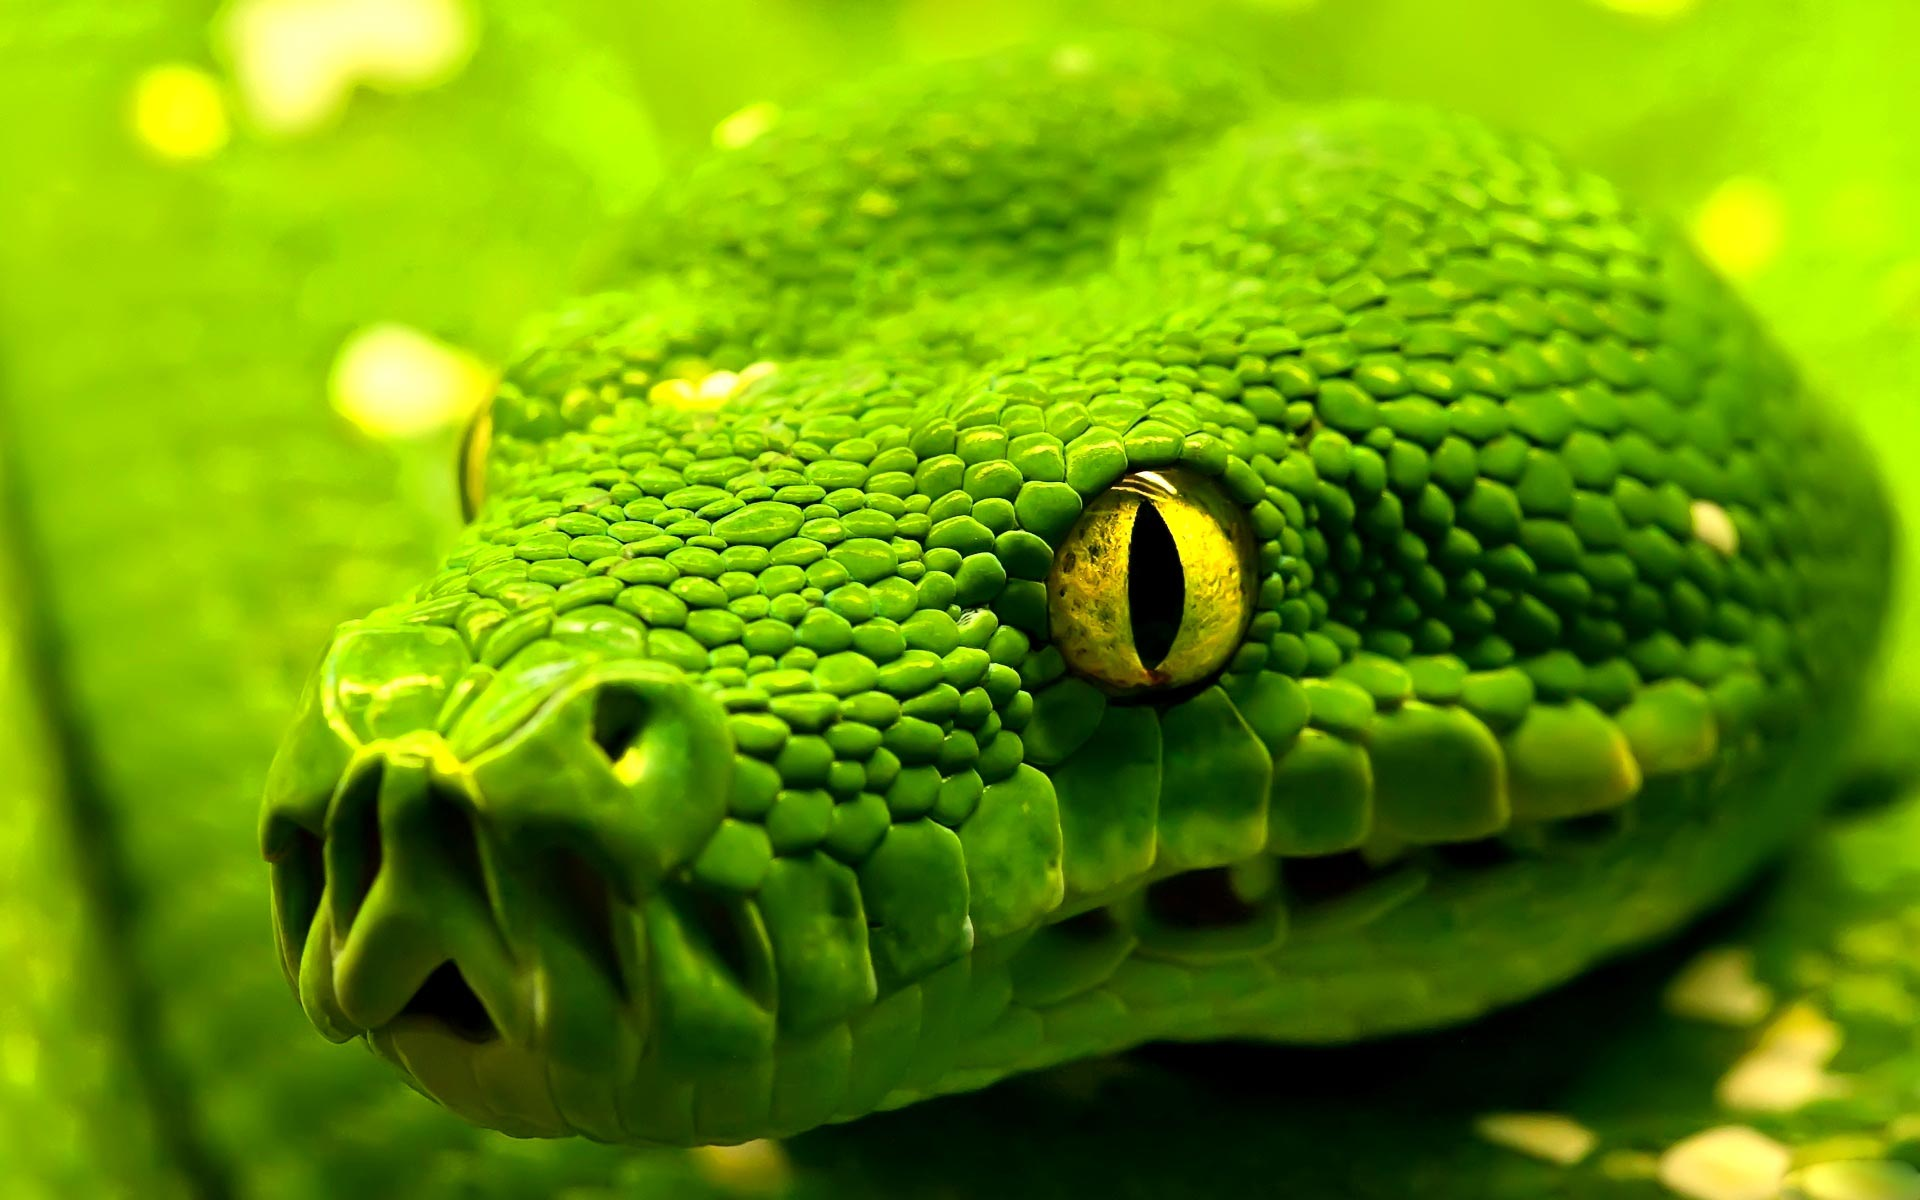 Snakes are generally very shy animals who want nothing to do with humans. They can be beneficial because they eat mice, slugs, grubs, insects, ...